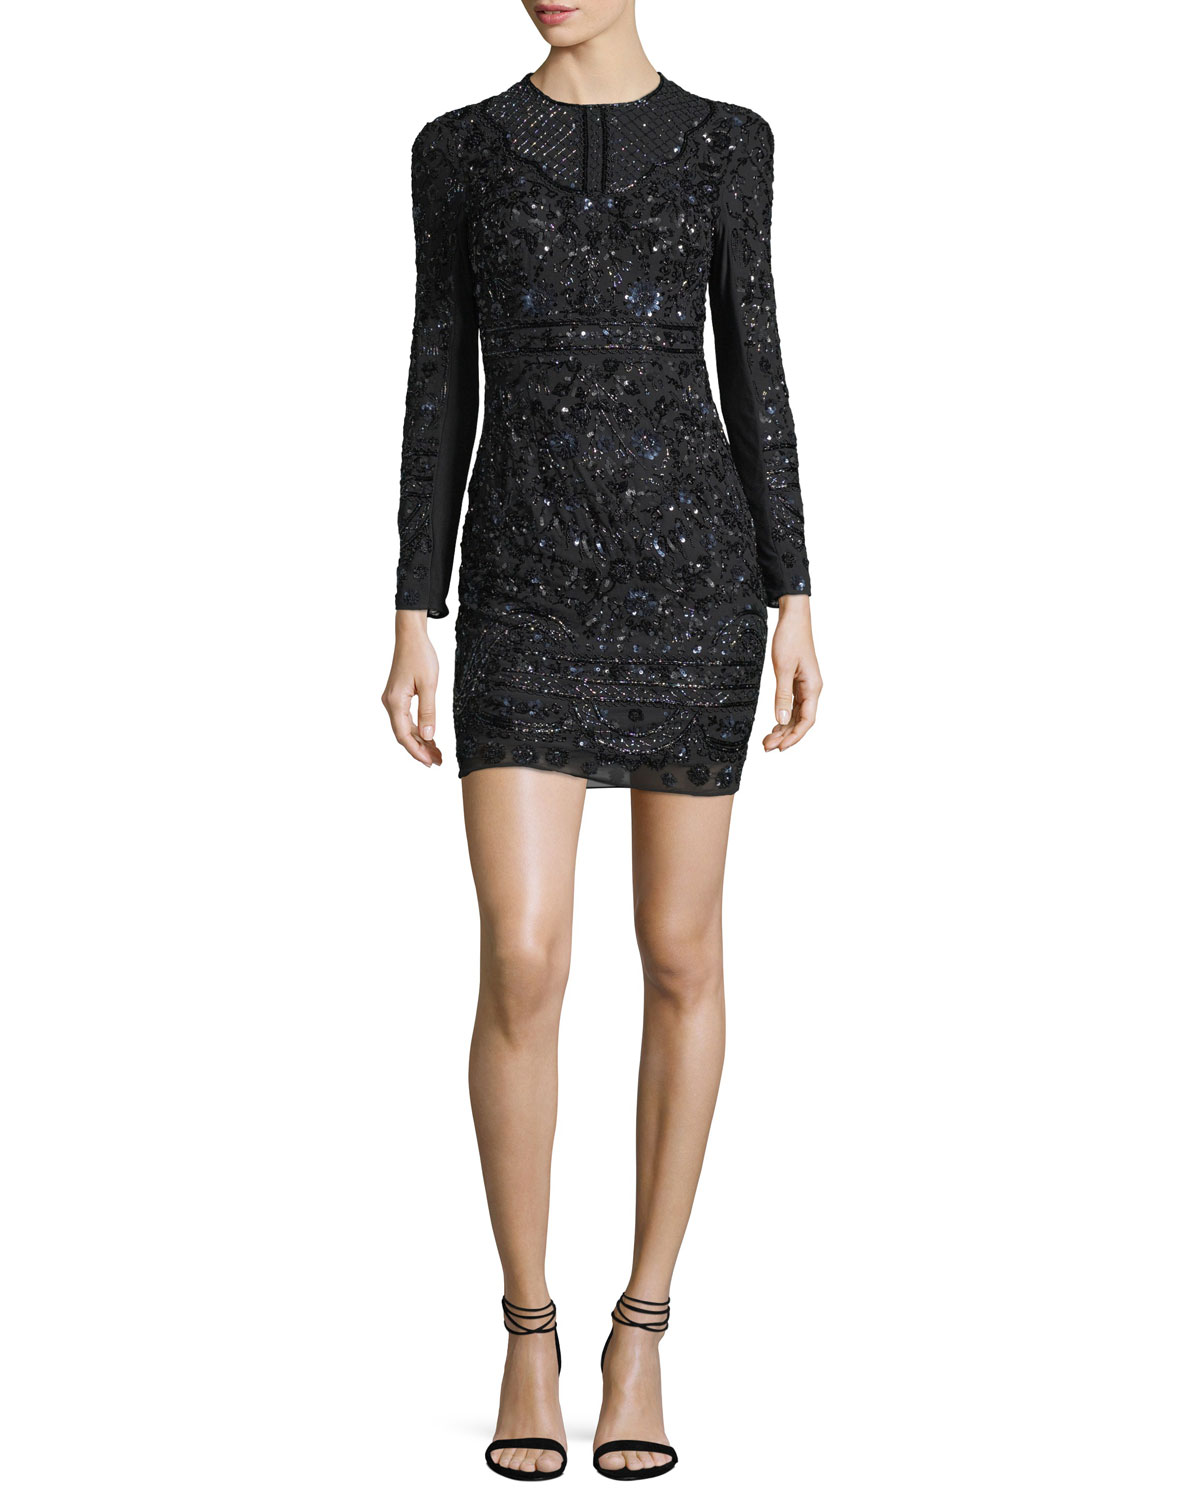 Midnight Lace Cocktail Dress W/ Embellishments